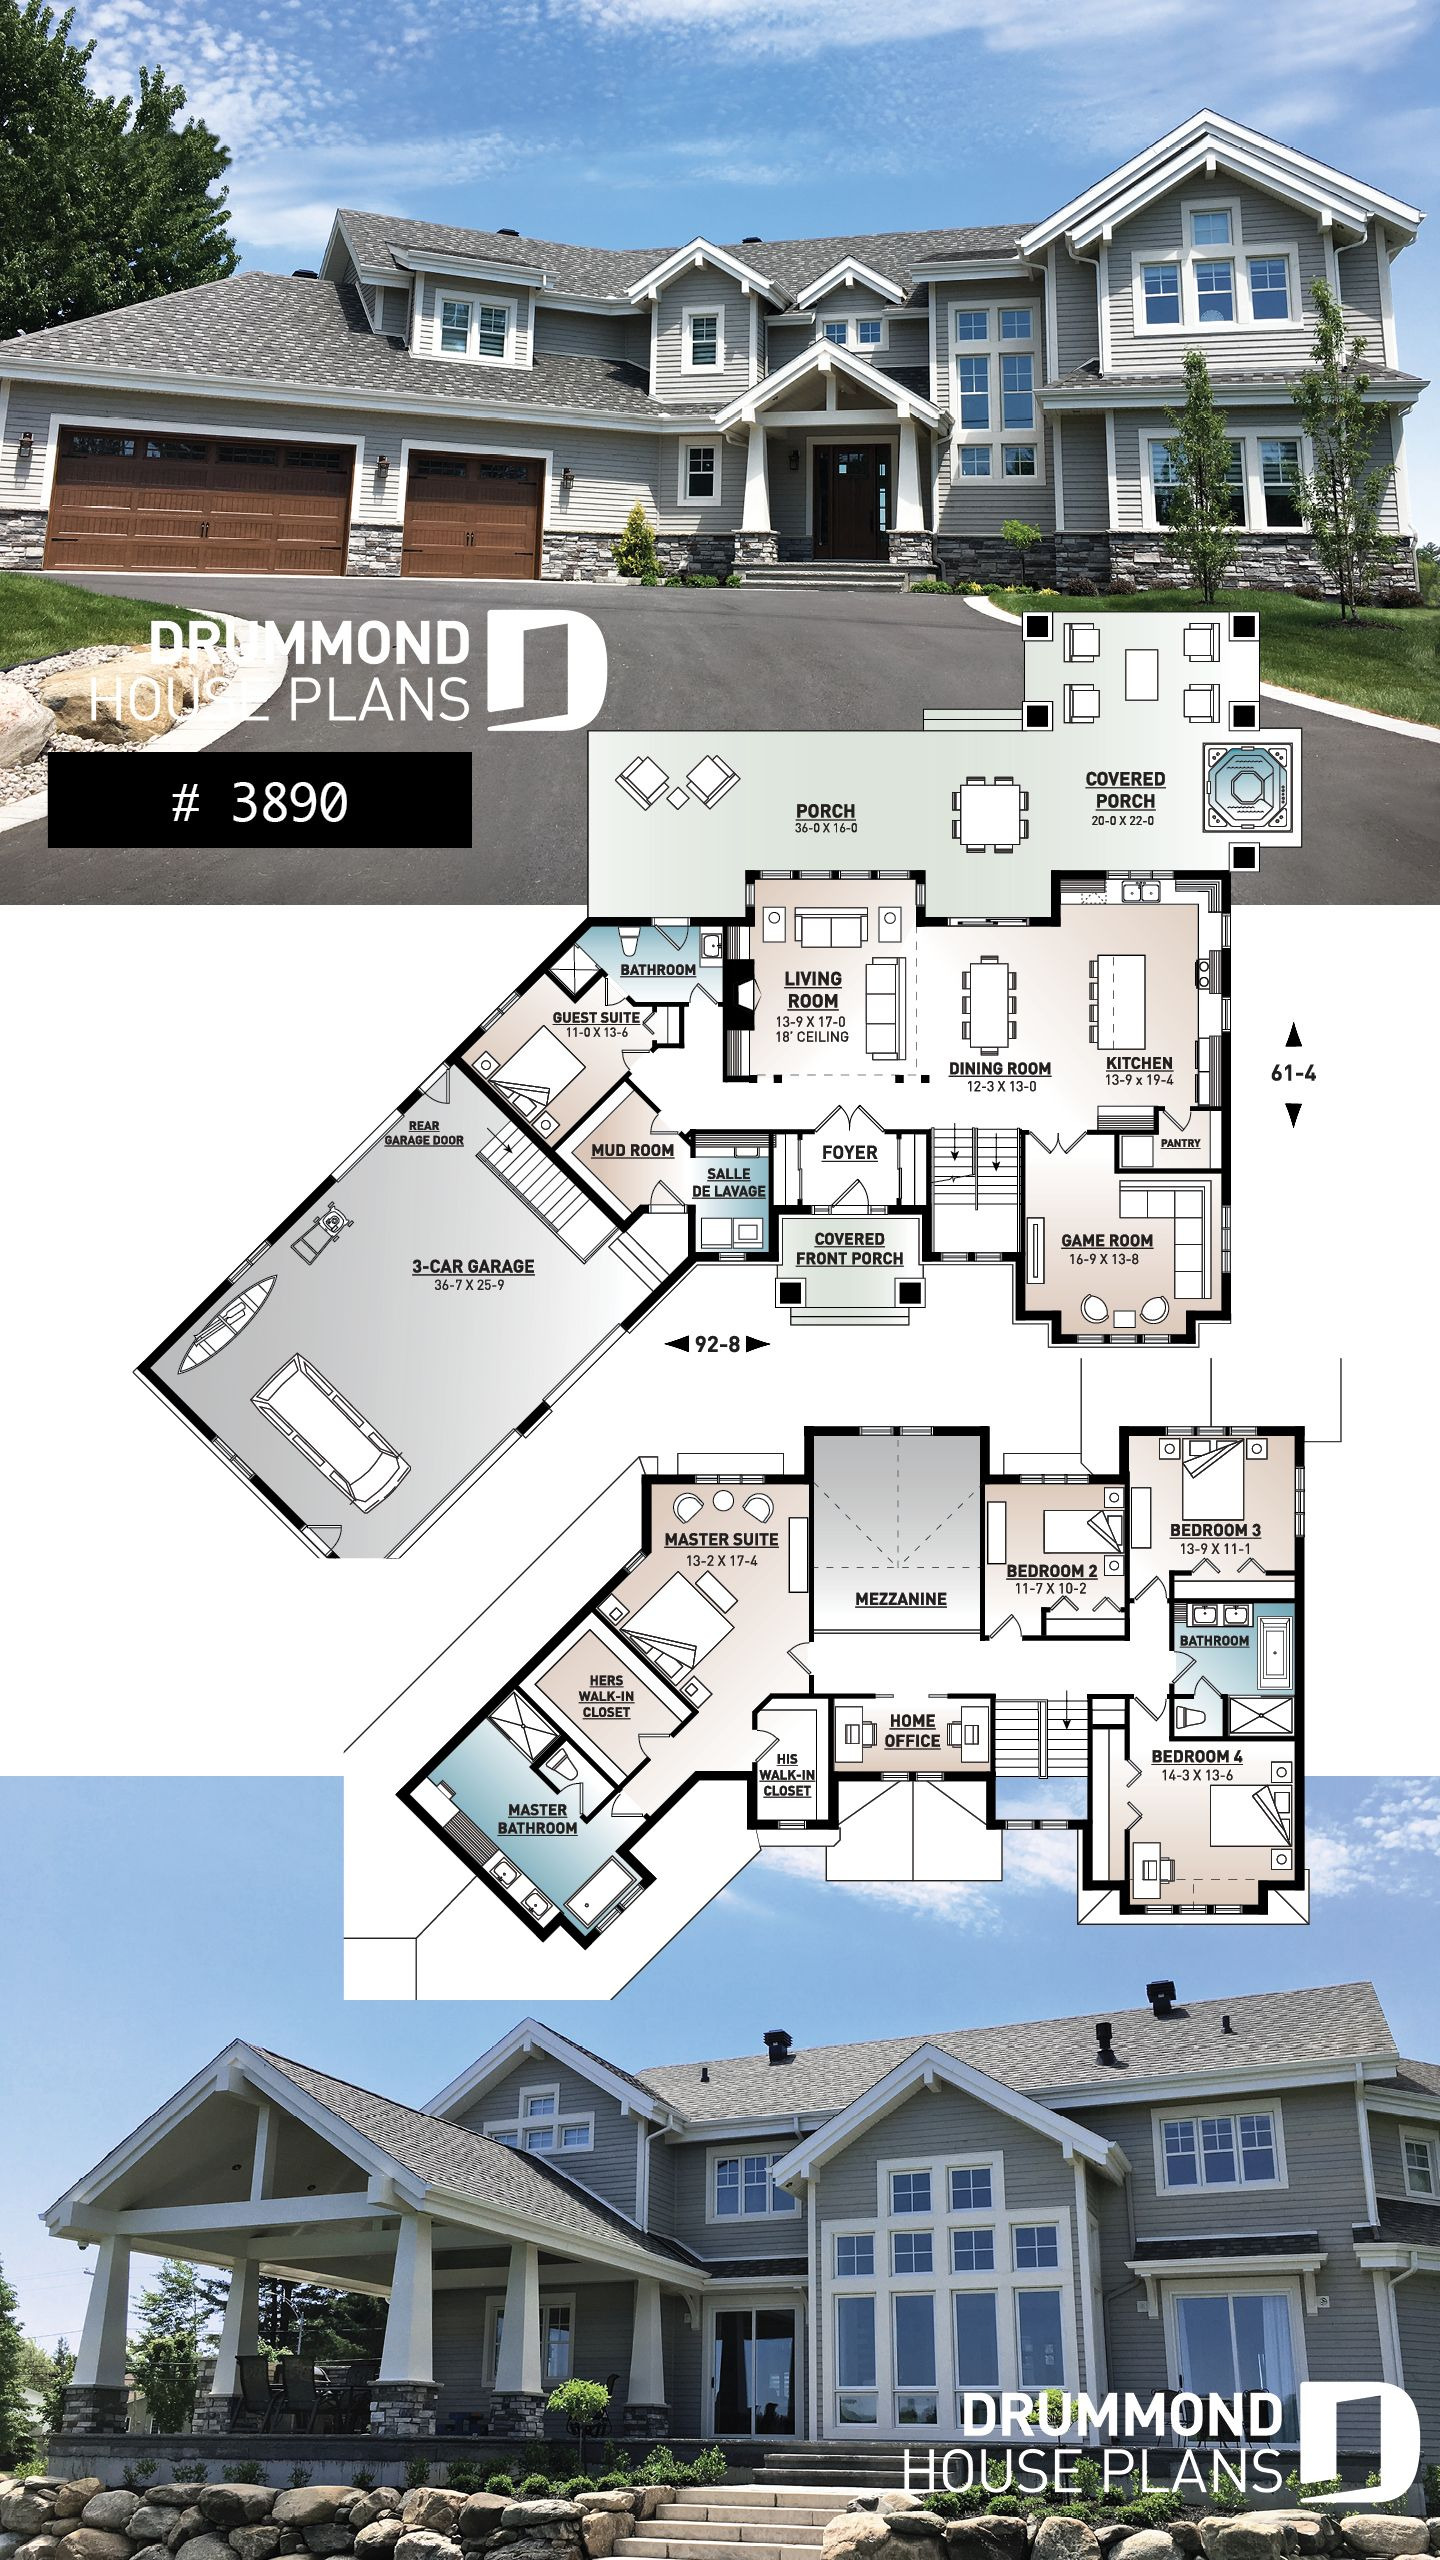 Large House Plans 7 Bedrooms Inspirational House Plan Hemingway No 3890